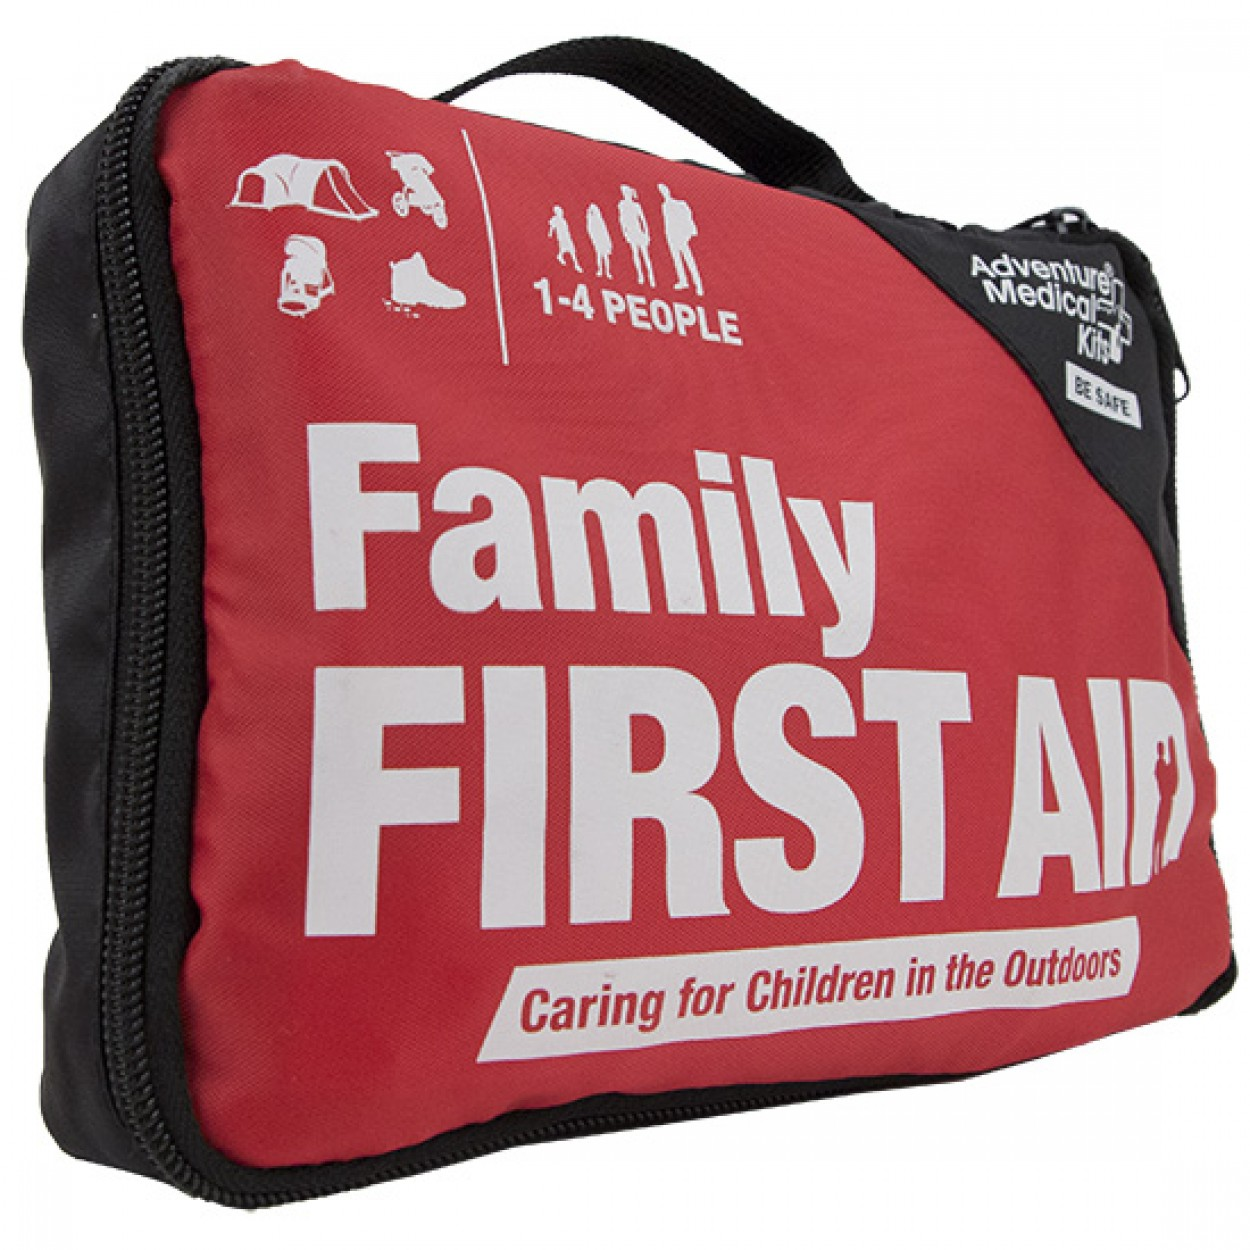 Family First Aid Kit - Adventure® Medical Kits